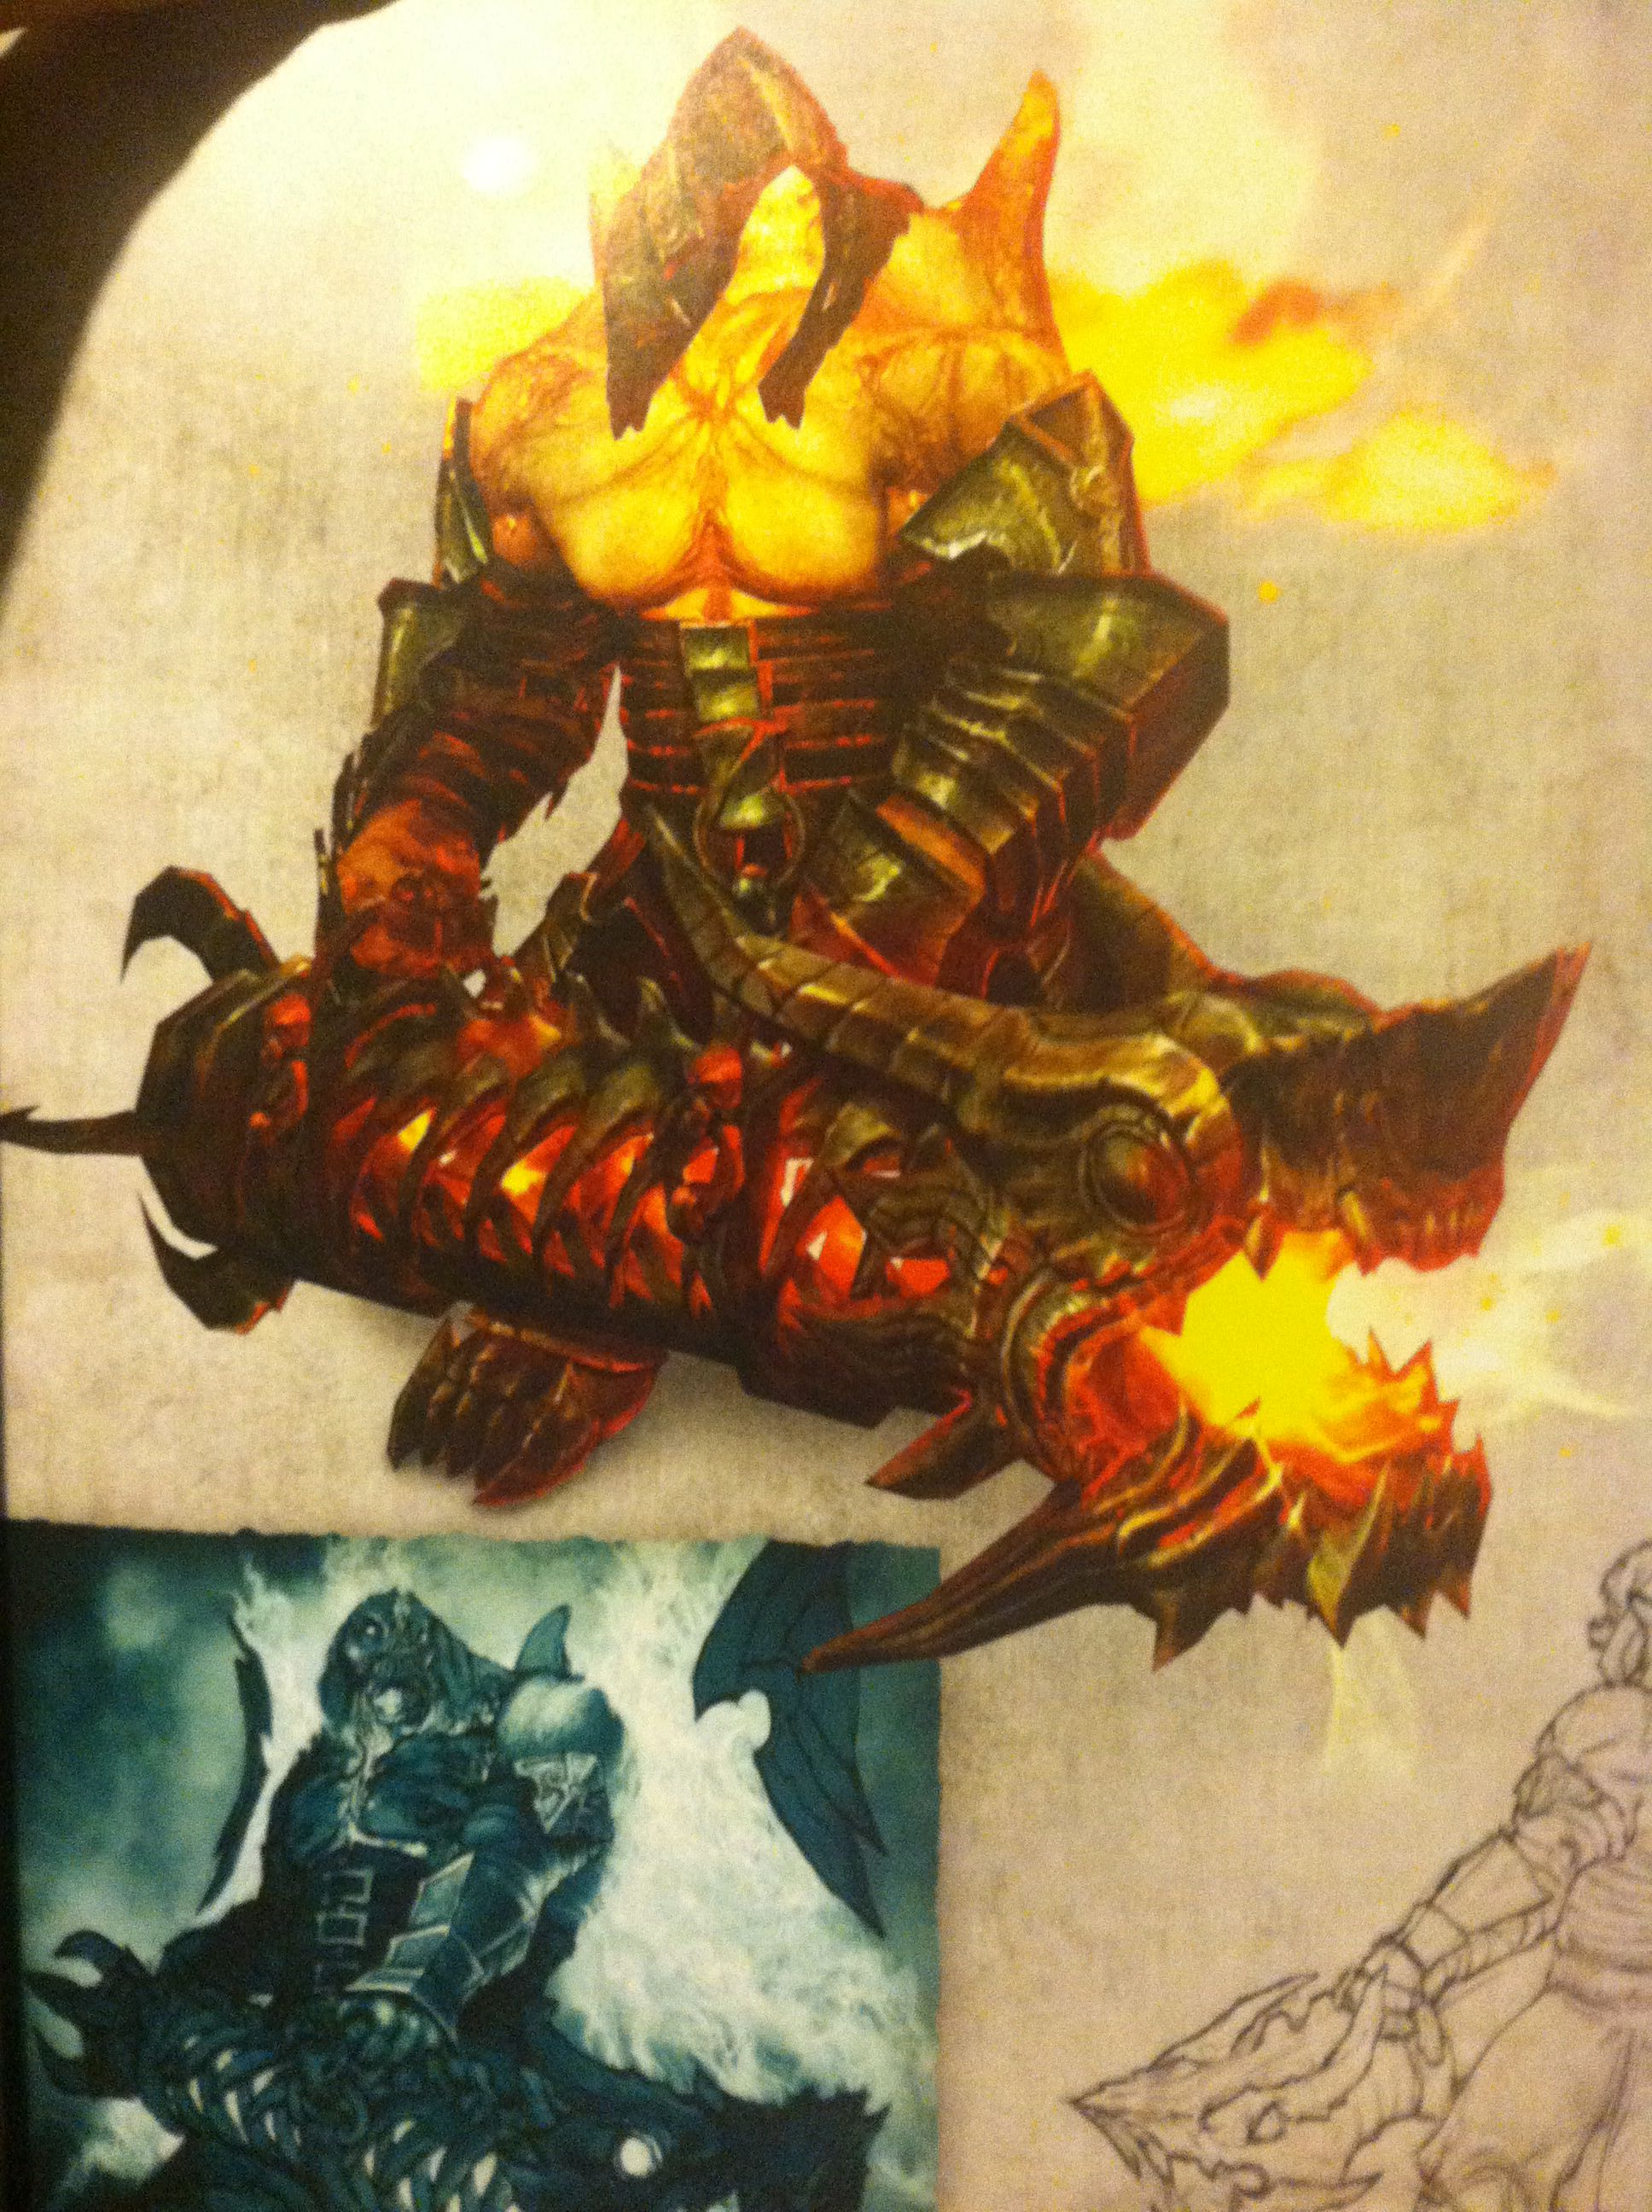 Urzael from Diablo 3 as a future cosplay??   Cosplay   Cosplay